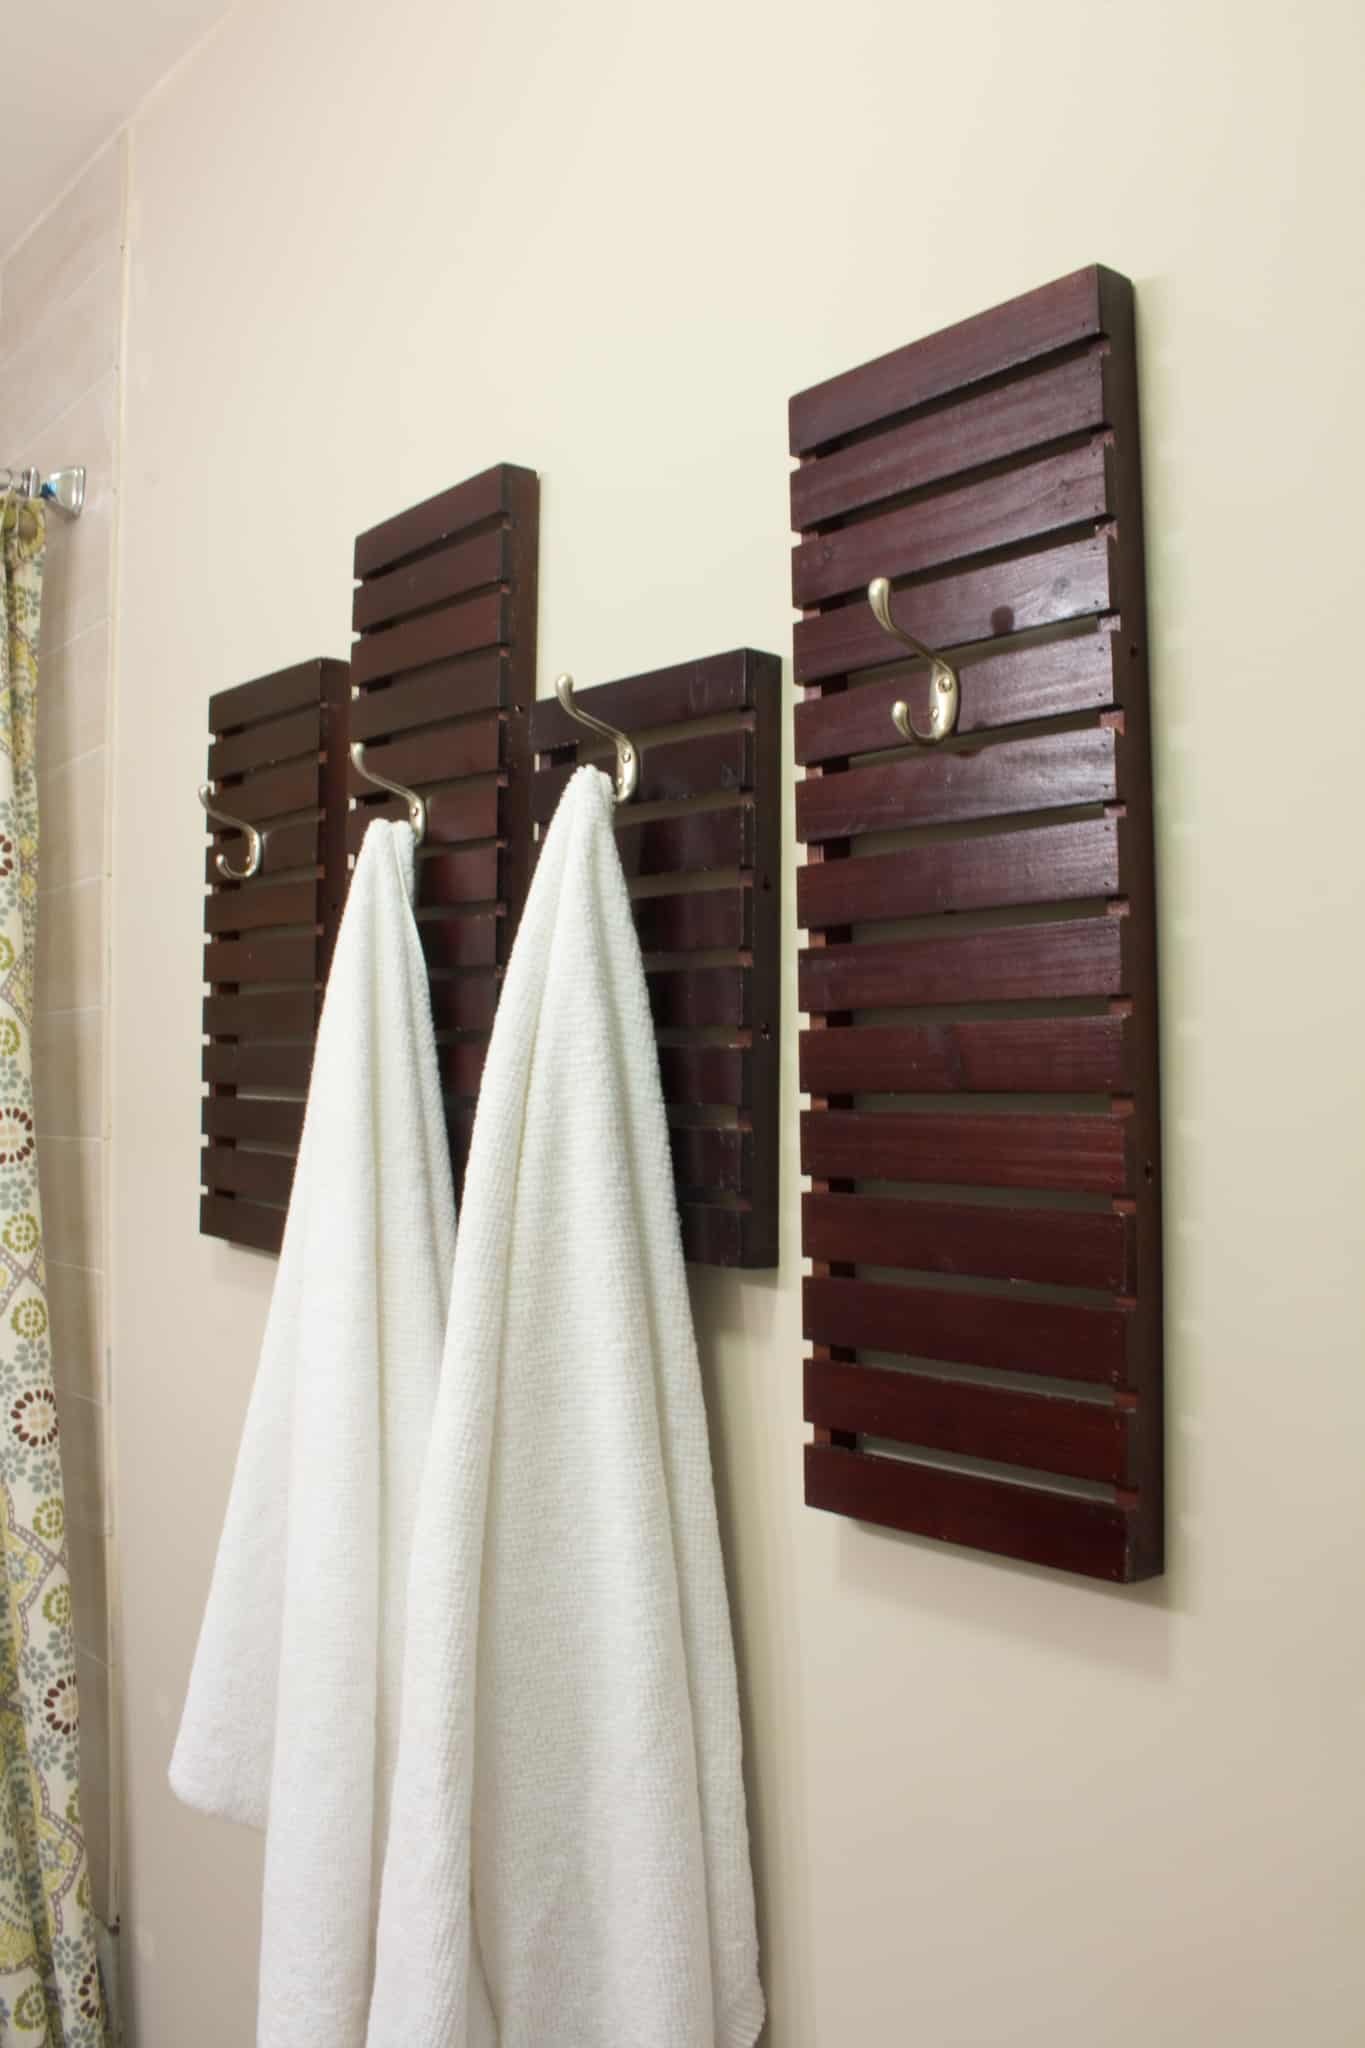 DIY Towel Rack Made From Shelves-Thrift Store Upcycle ...